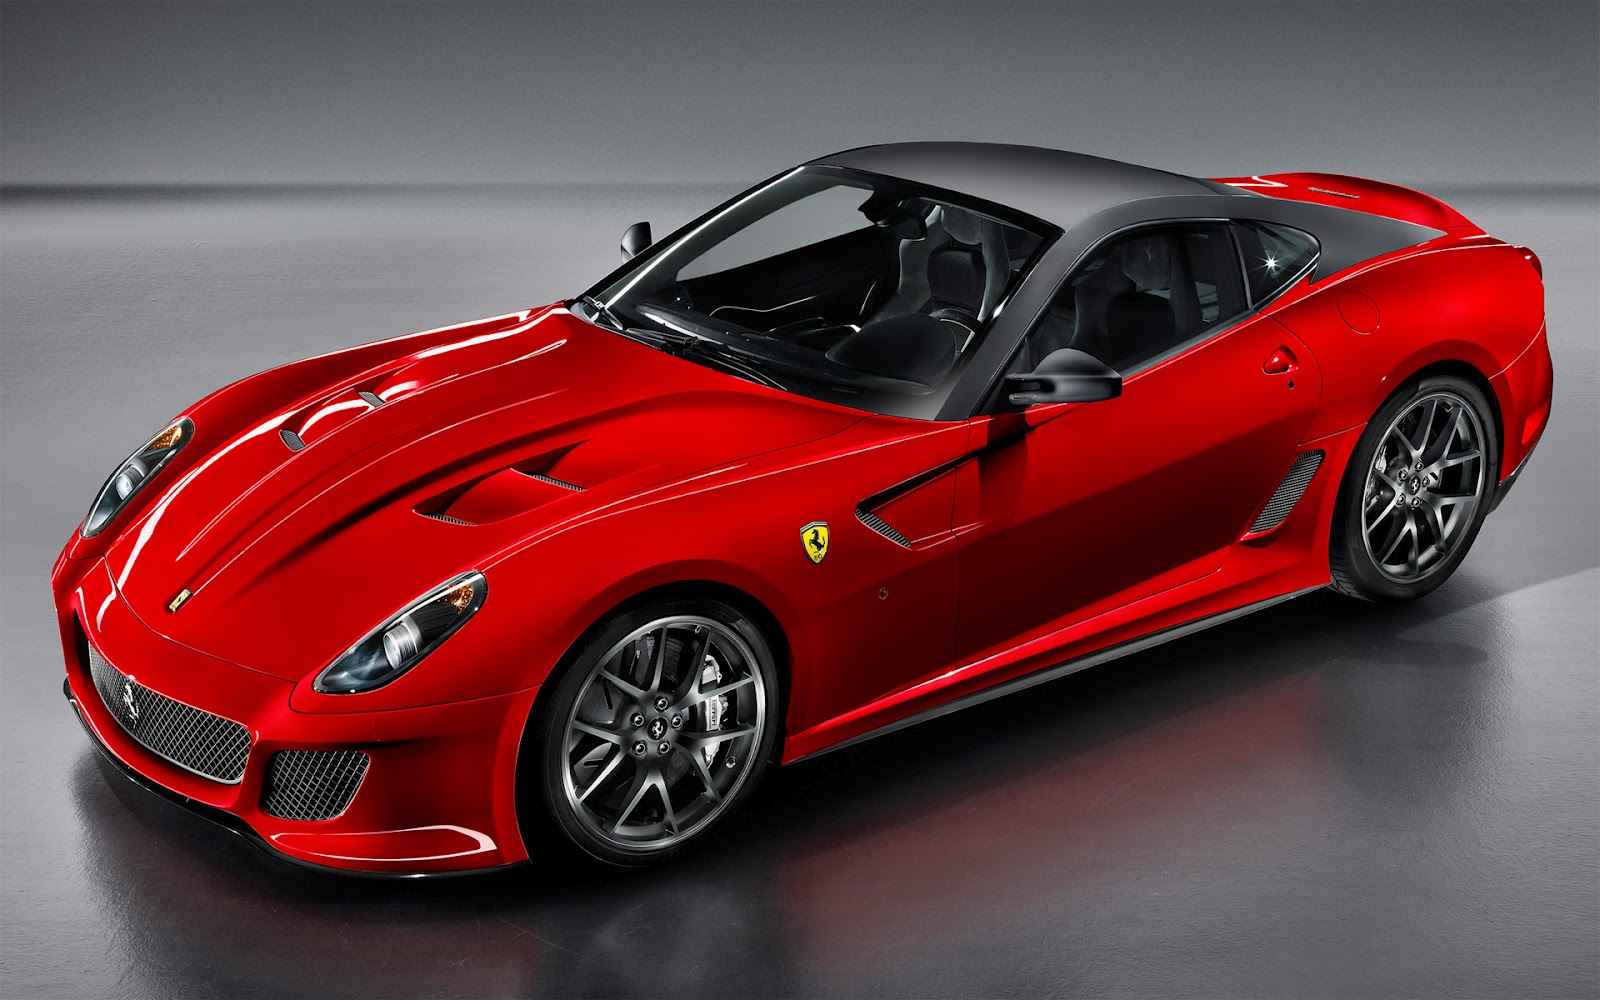 World Best Top 10 Cars Full HD Wallpapers 10 Cool Car Wallpapers 1600x1000